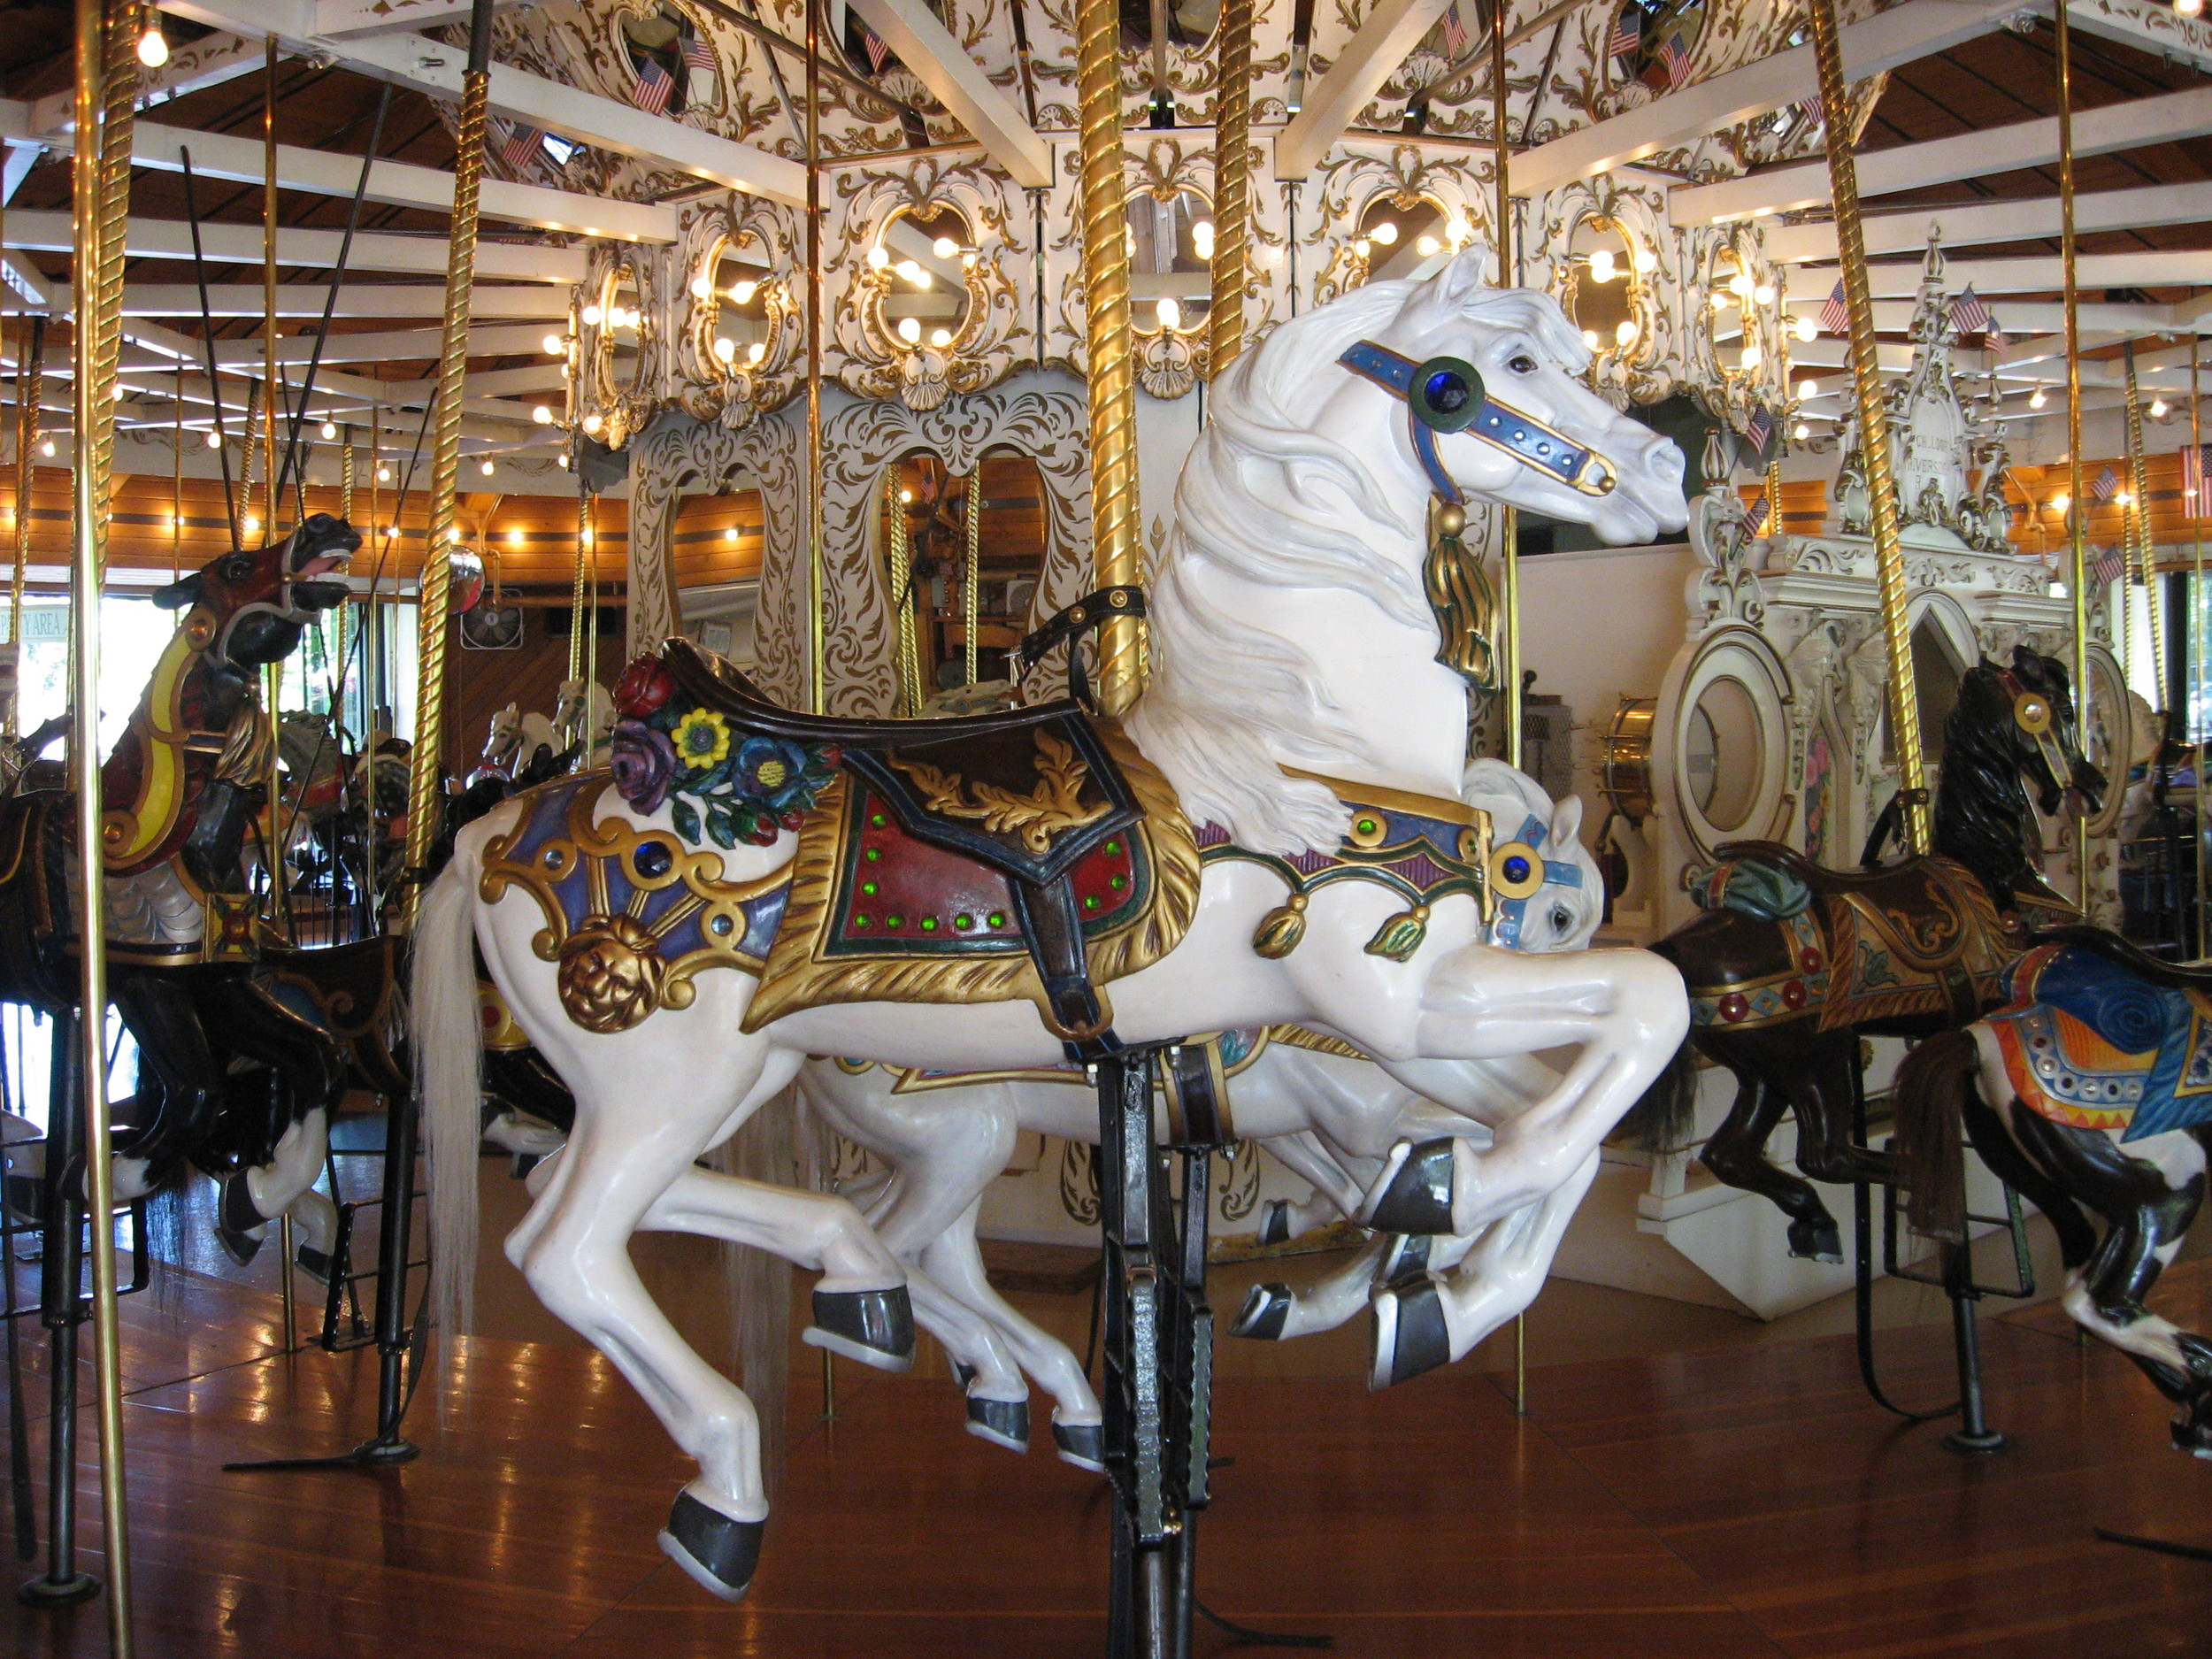 A carousel is common place in many cities I have visited - Spokane, Missoula, Helena and places like Paris and Lyon. Why not Calgary?